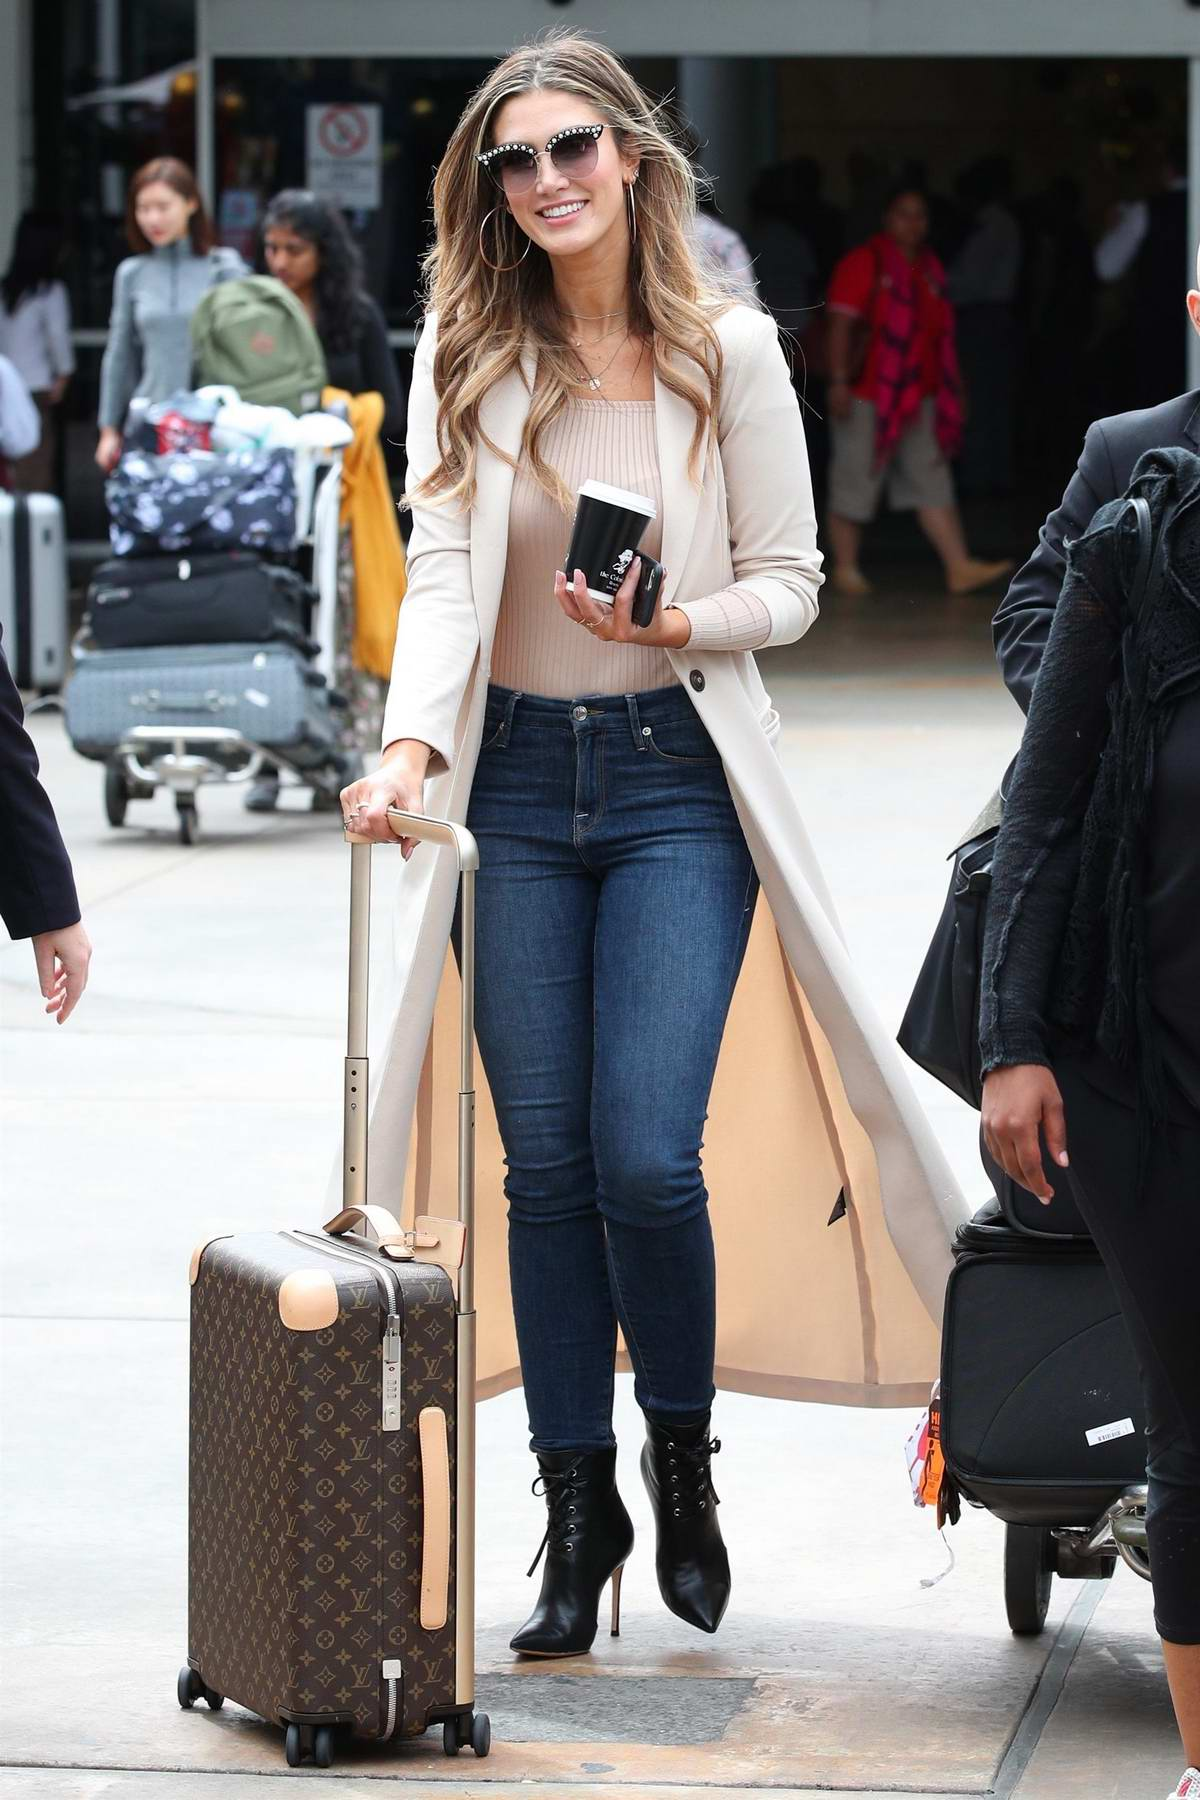 Delta Goodrem spotted at the airport in Sydney, Australia